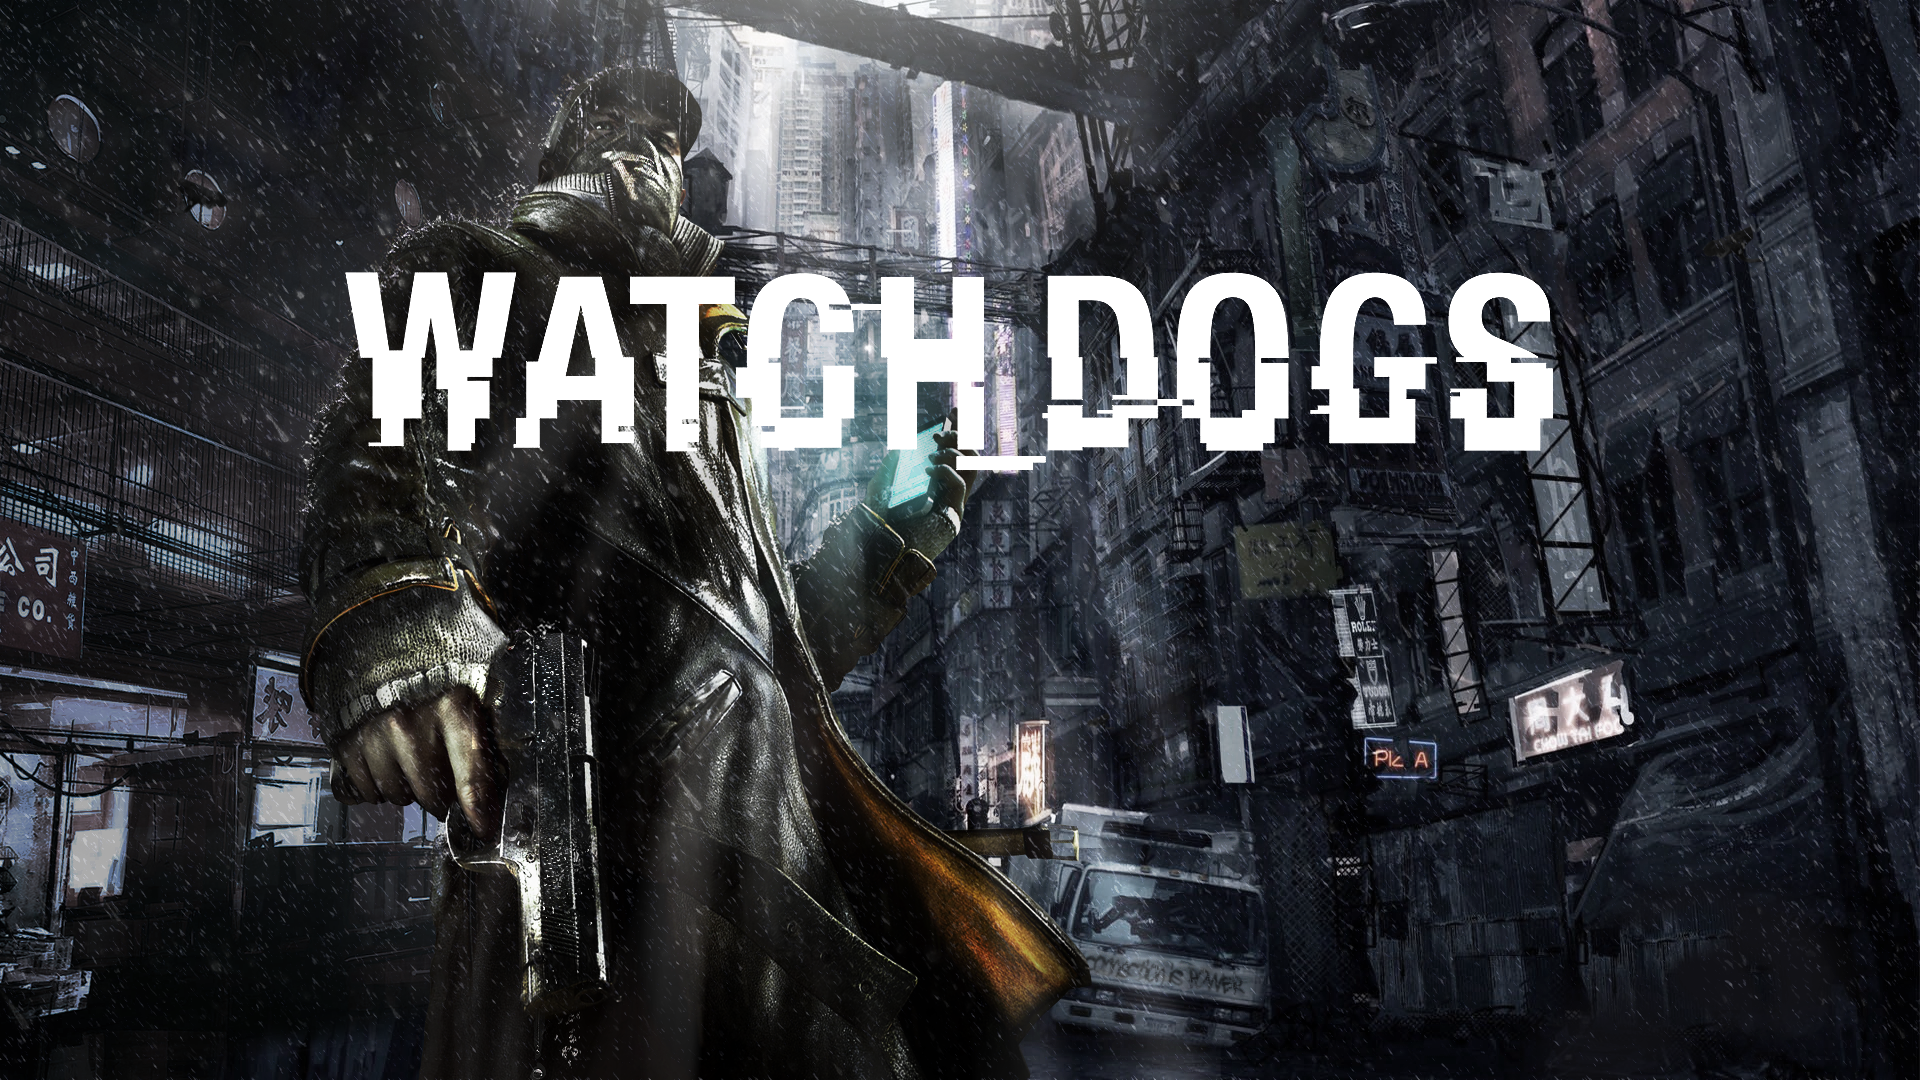 watch dogs #Games4Quarantine